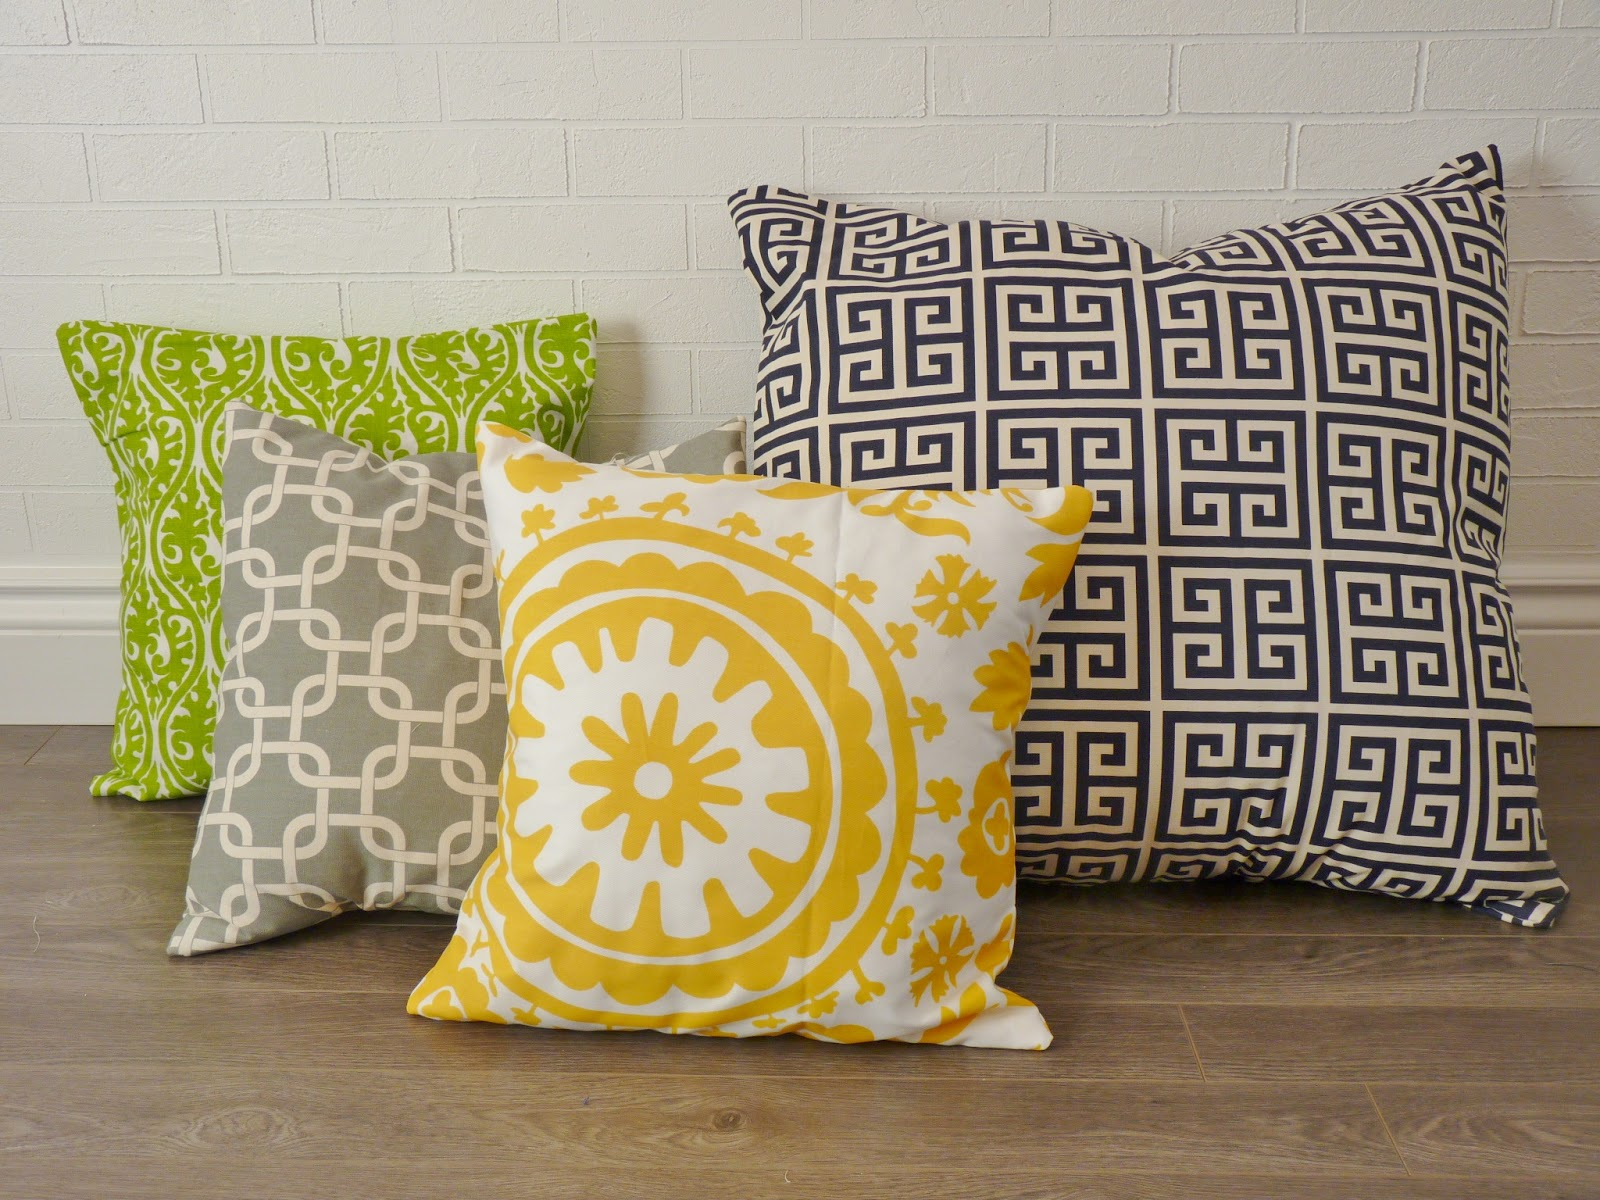 d i y d e s i g n sewing 101 project 1 simple pillow sham